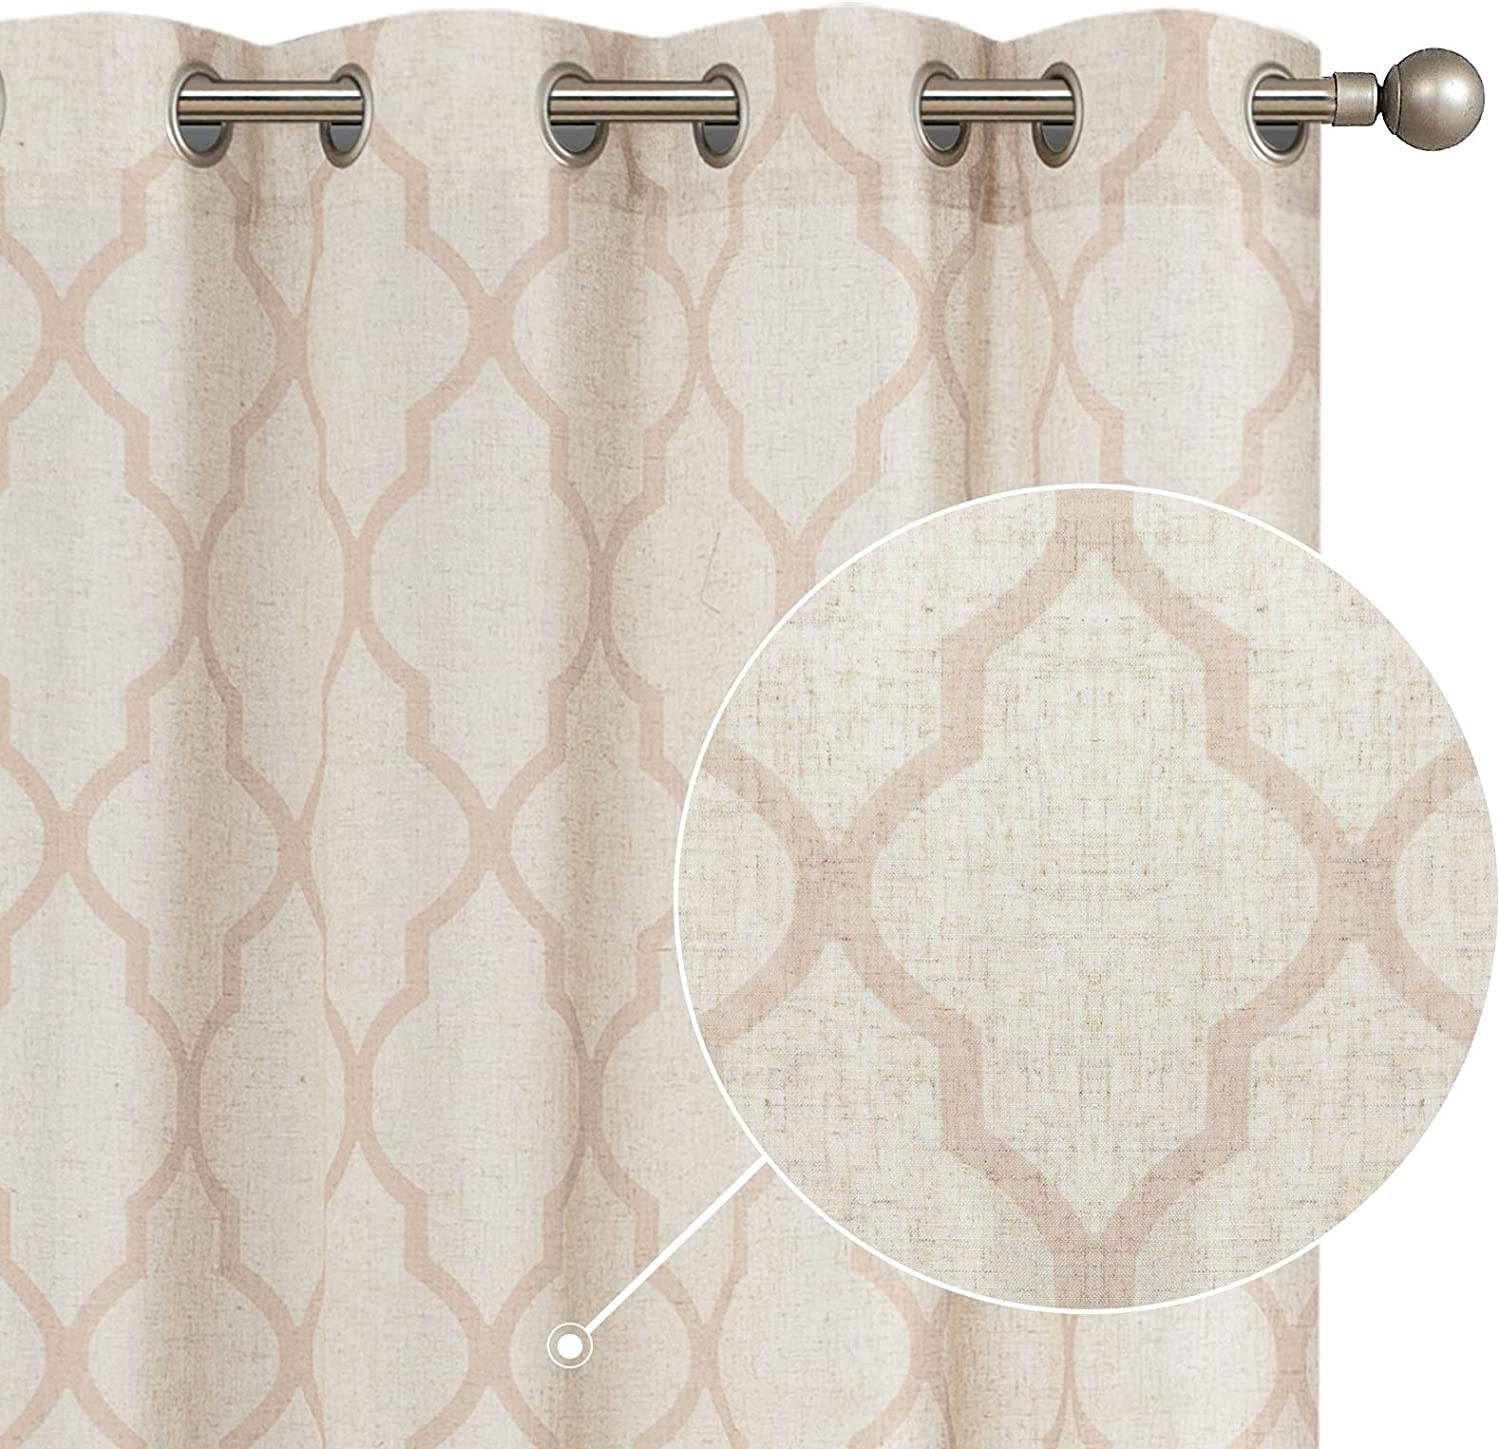 Trades Routes hand block printed moroccan home decor cafe curtain in coral and taupe on natural mixed linen